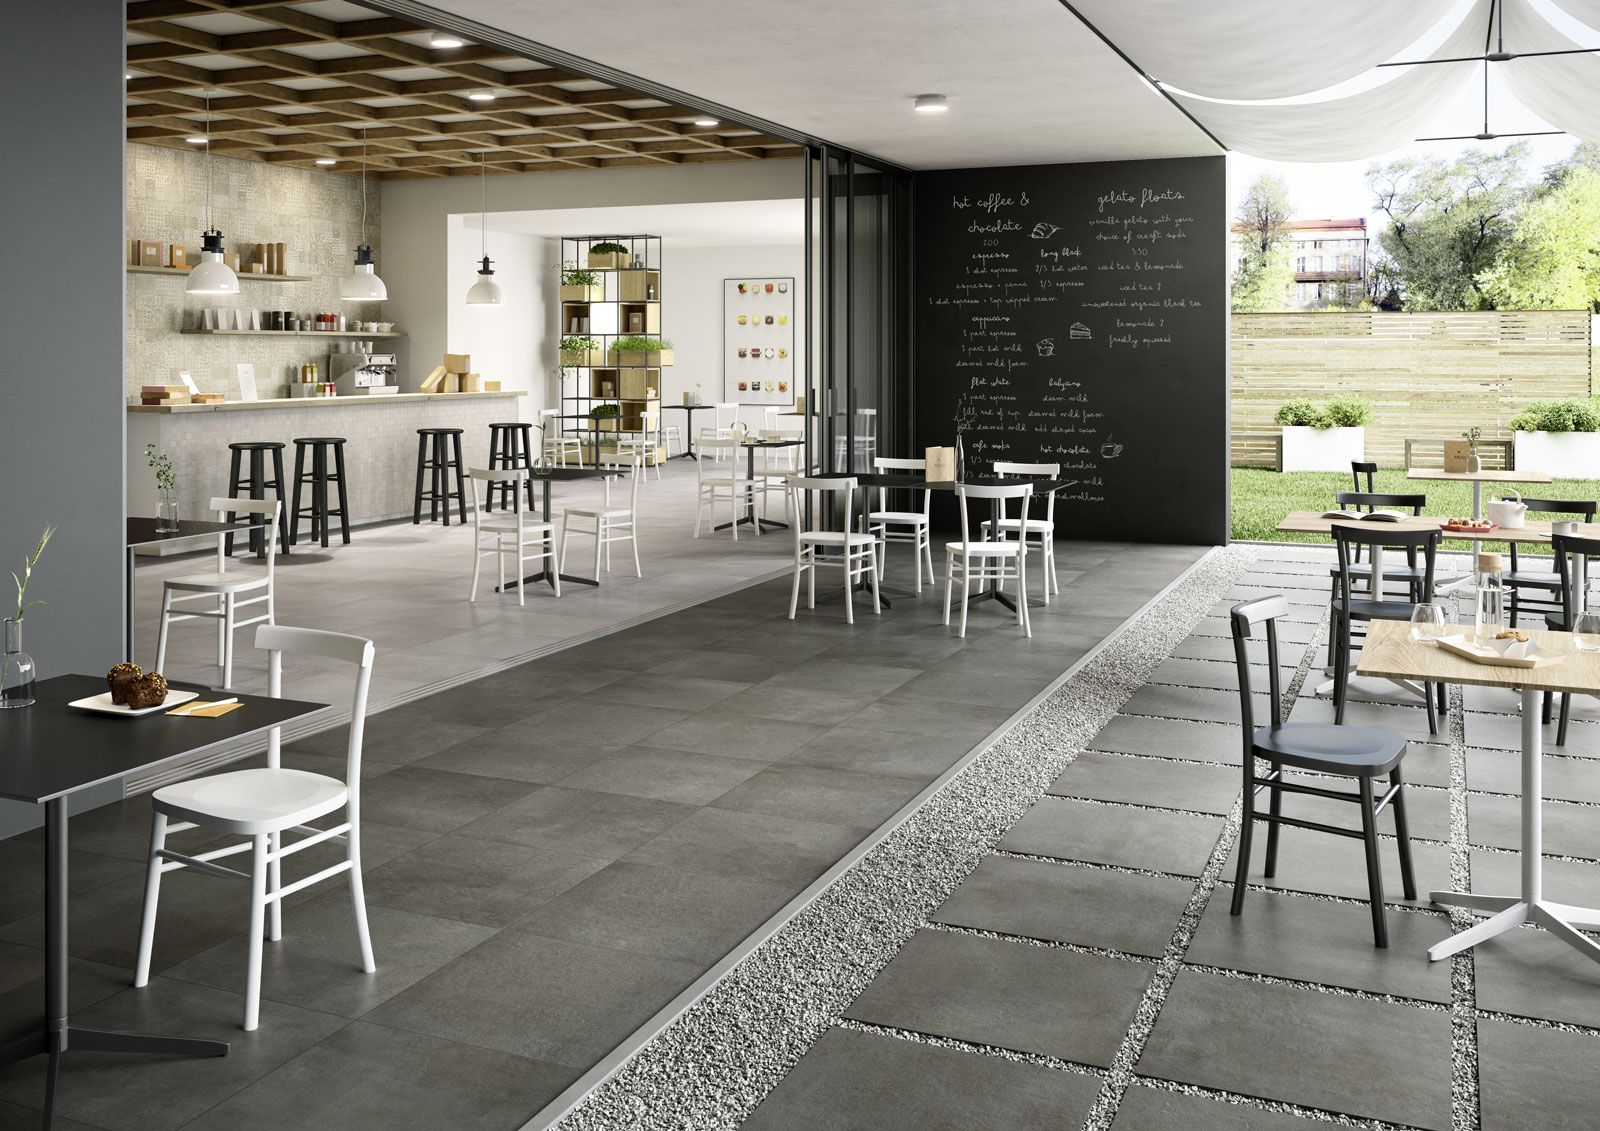 Plaster20 outdoor flooring marazzi interior design plaster outdoor tiles gardens and terraces marazzi dailygadgetfo Image collections